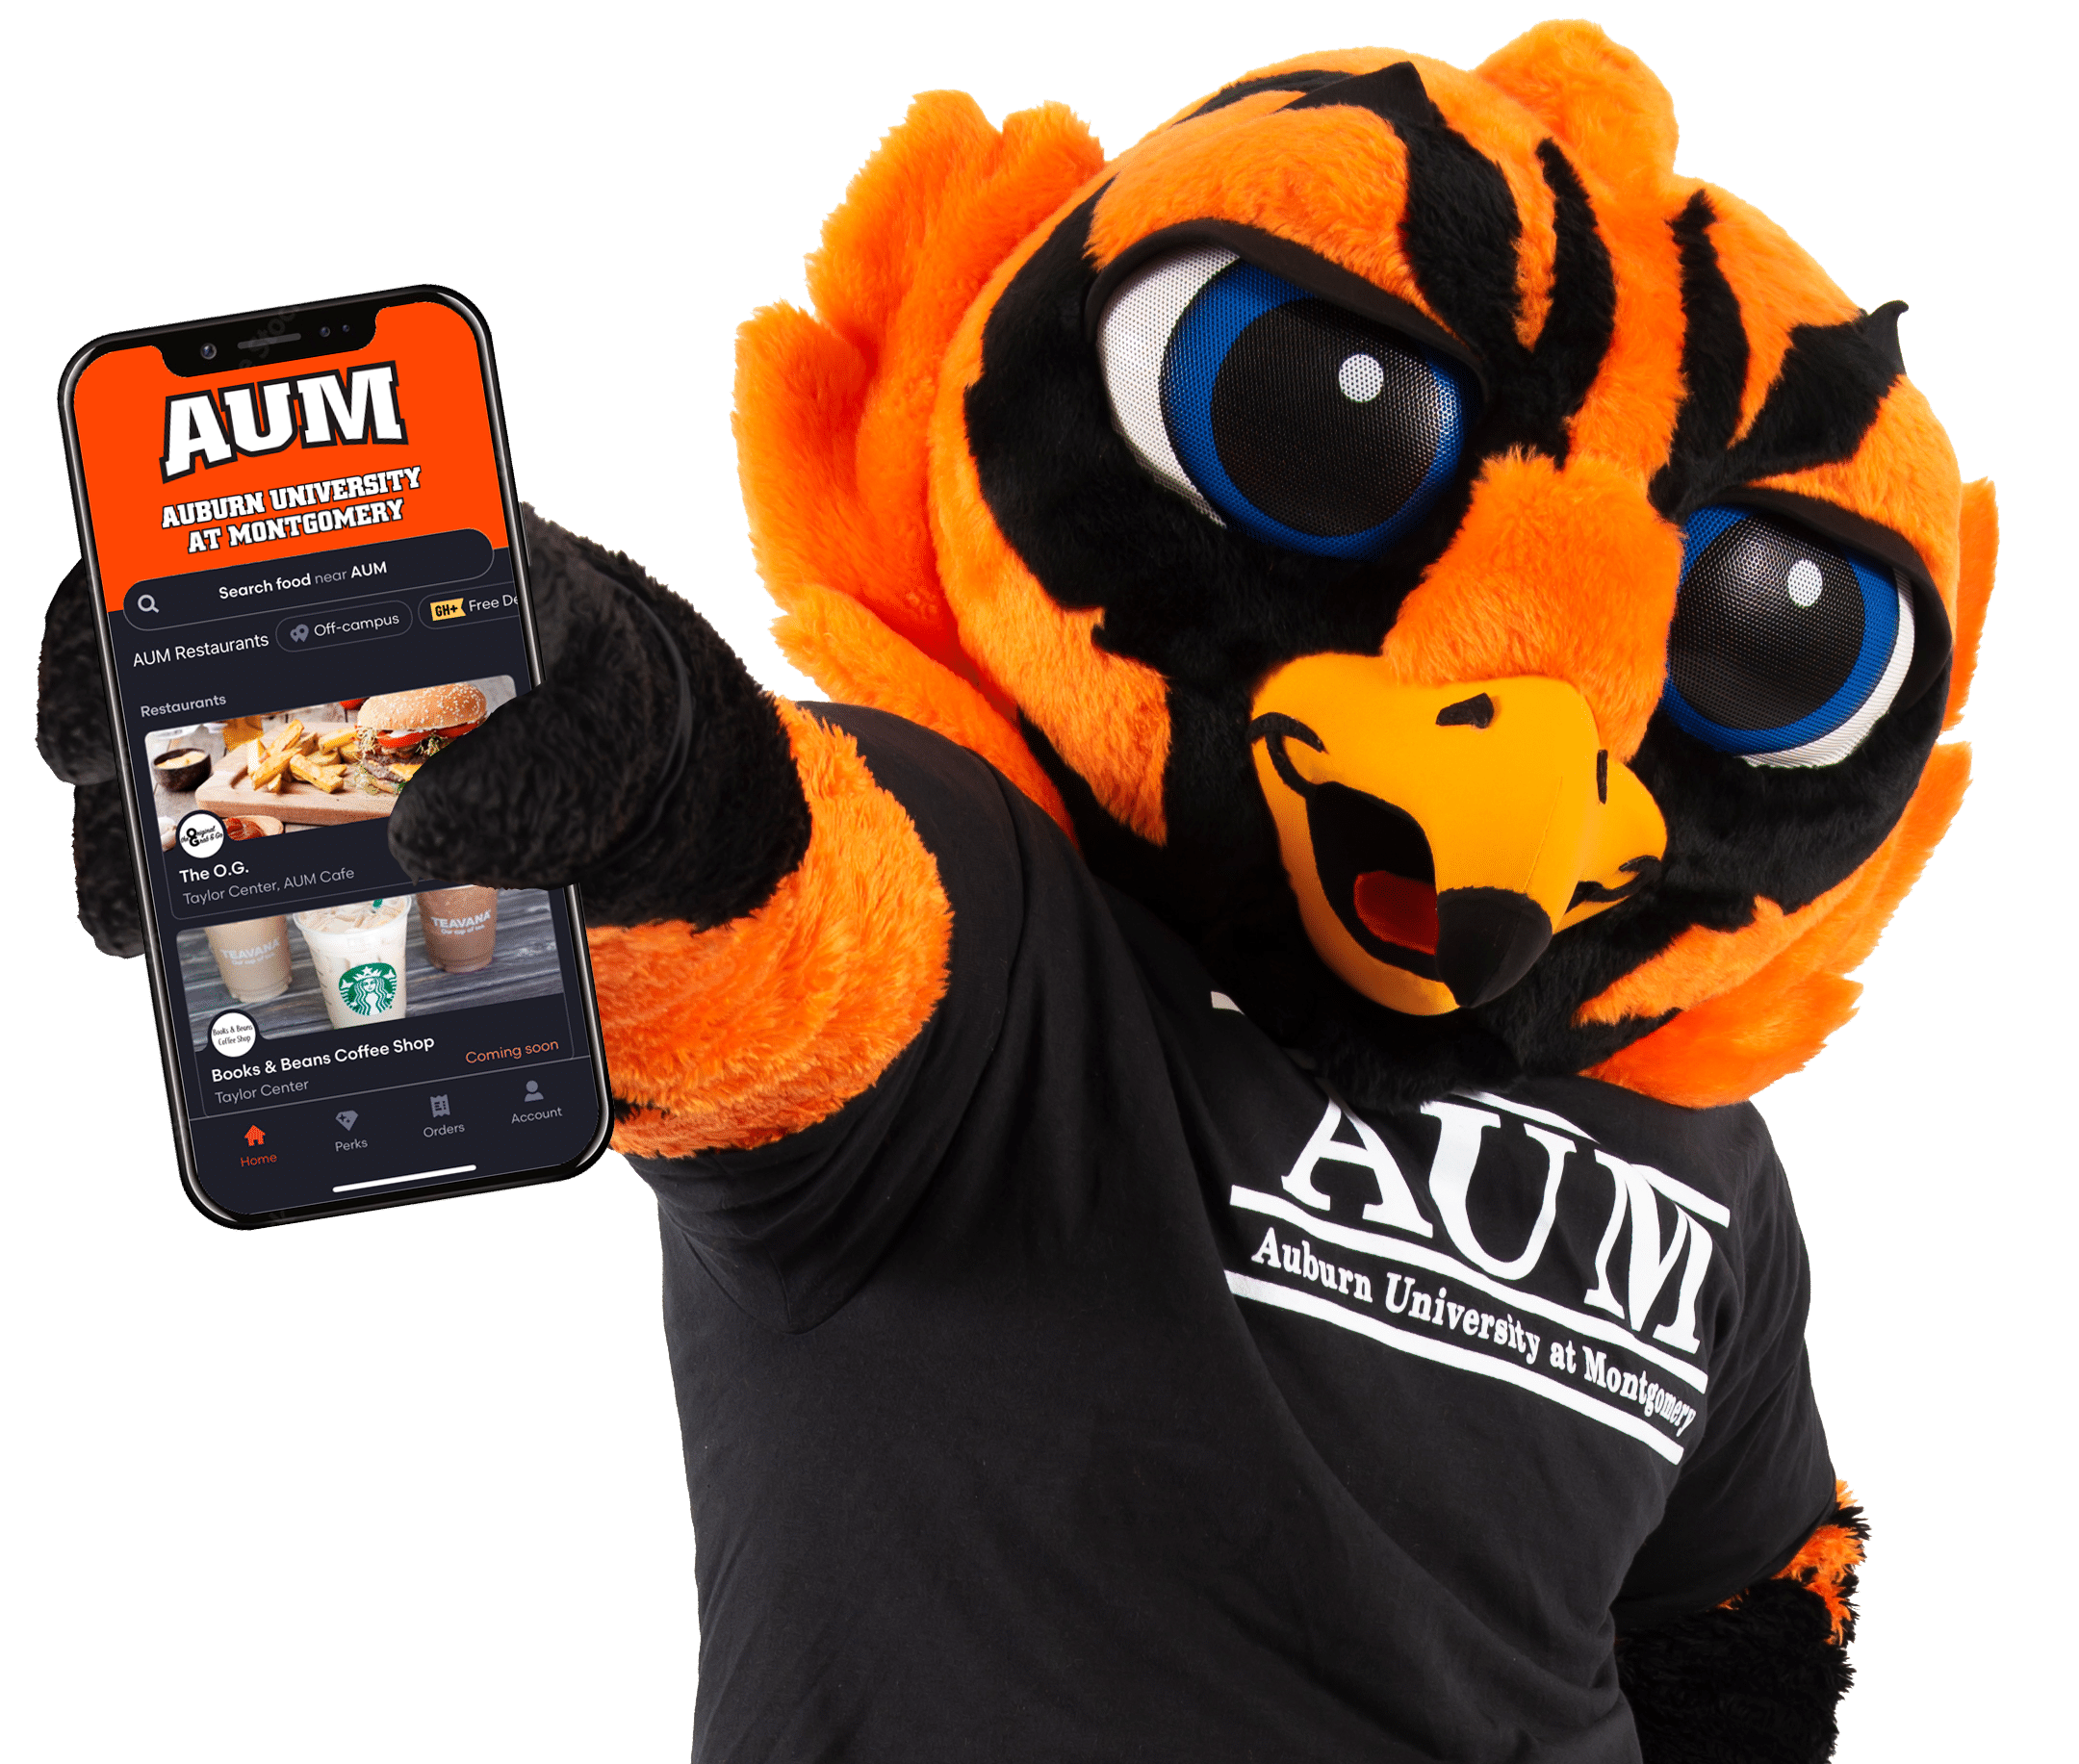 warhawk with phone with AUM app